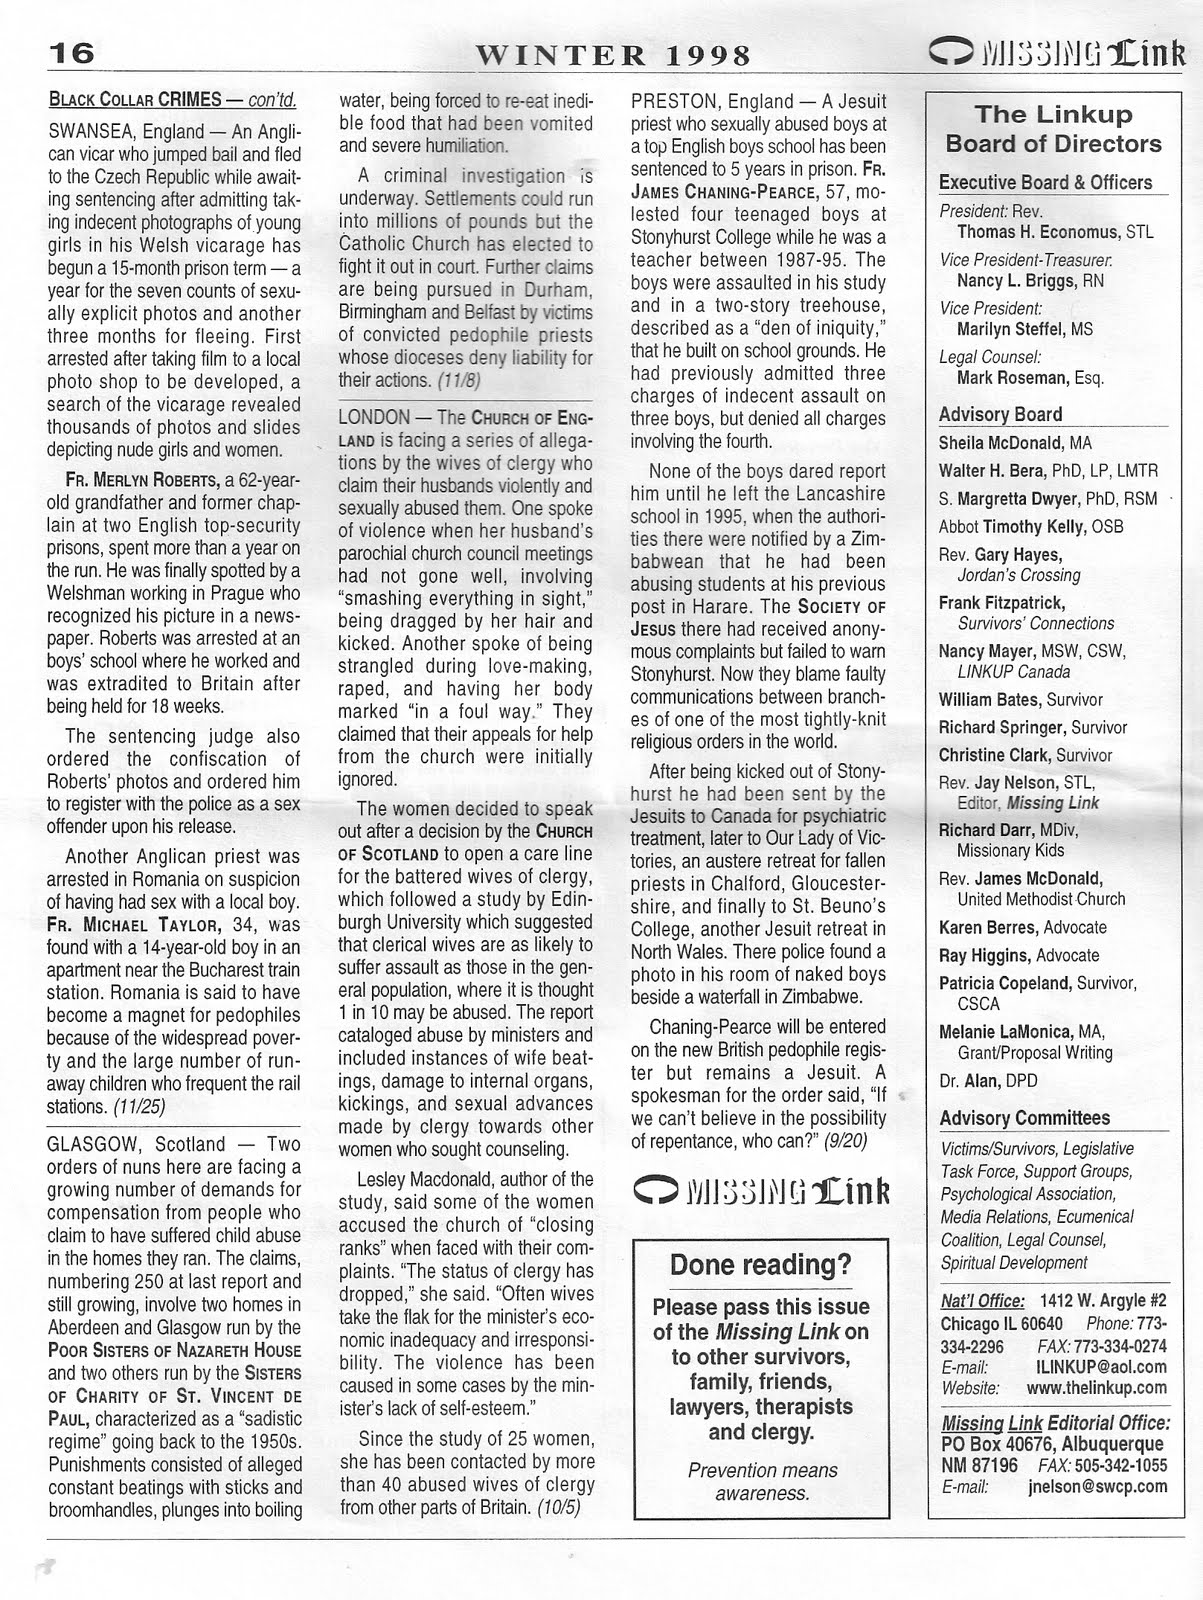 Linkup 1998 Newsletter Scanned Here to Whet Appetites for New Book ...